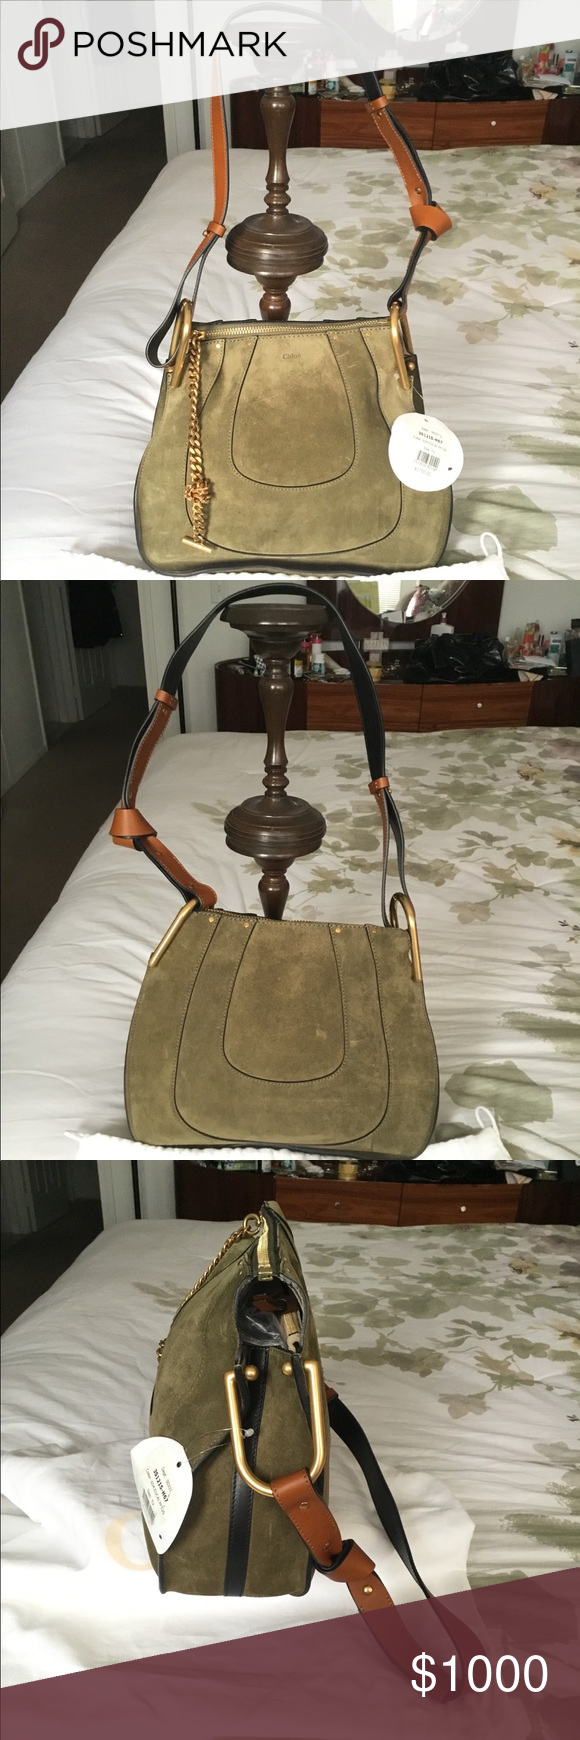 77a06ab67d NWT Authentic Chloe Hayley Suede Hobo Bag 💯 NWT Authentic Chloe Hayley  Olive Green Suede